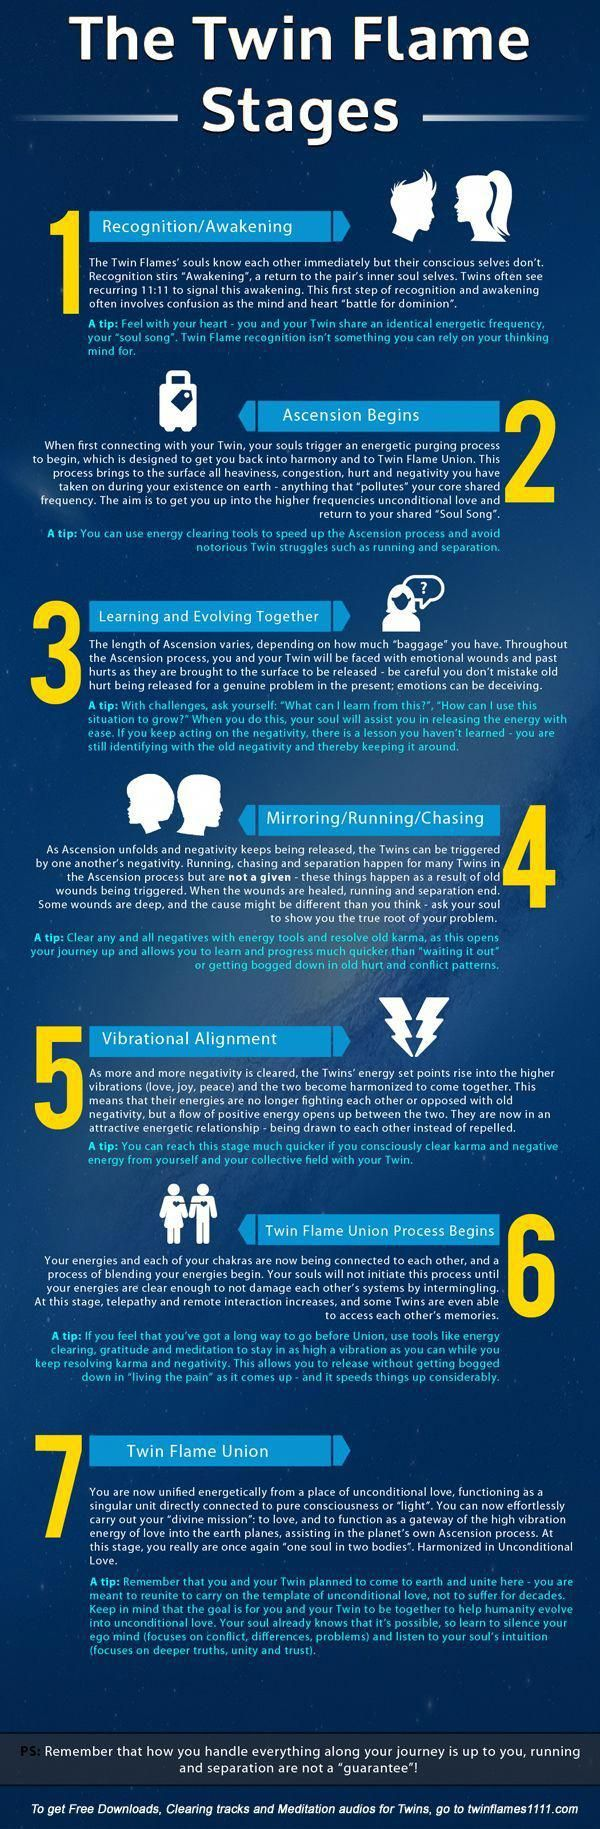 From Recognition and Awakening to Twin Flame Union - what's really going on behind the scenes on your journey? And what's the real cause of the infamous Twin Flame Running and Chasing? It's all here in this brand new infographic. #numerologycalculation